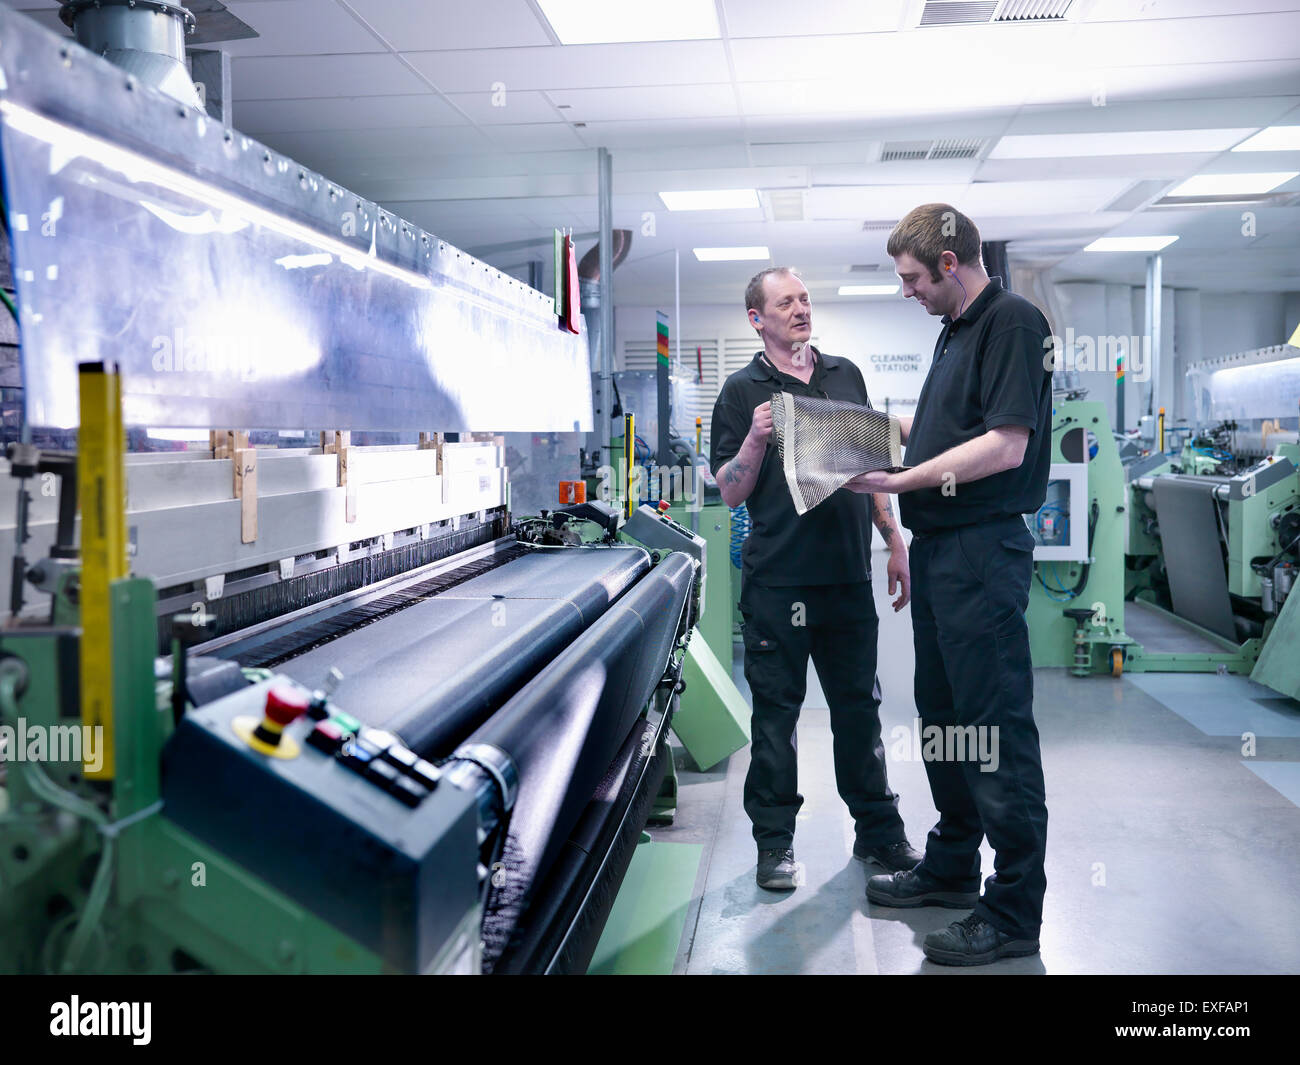 Workers inspecting carbon fibre sample in carbon fibre factory - Stock Image